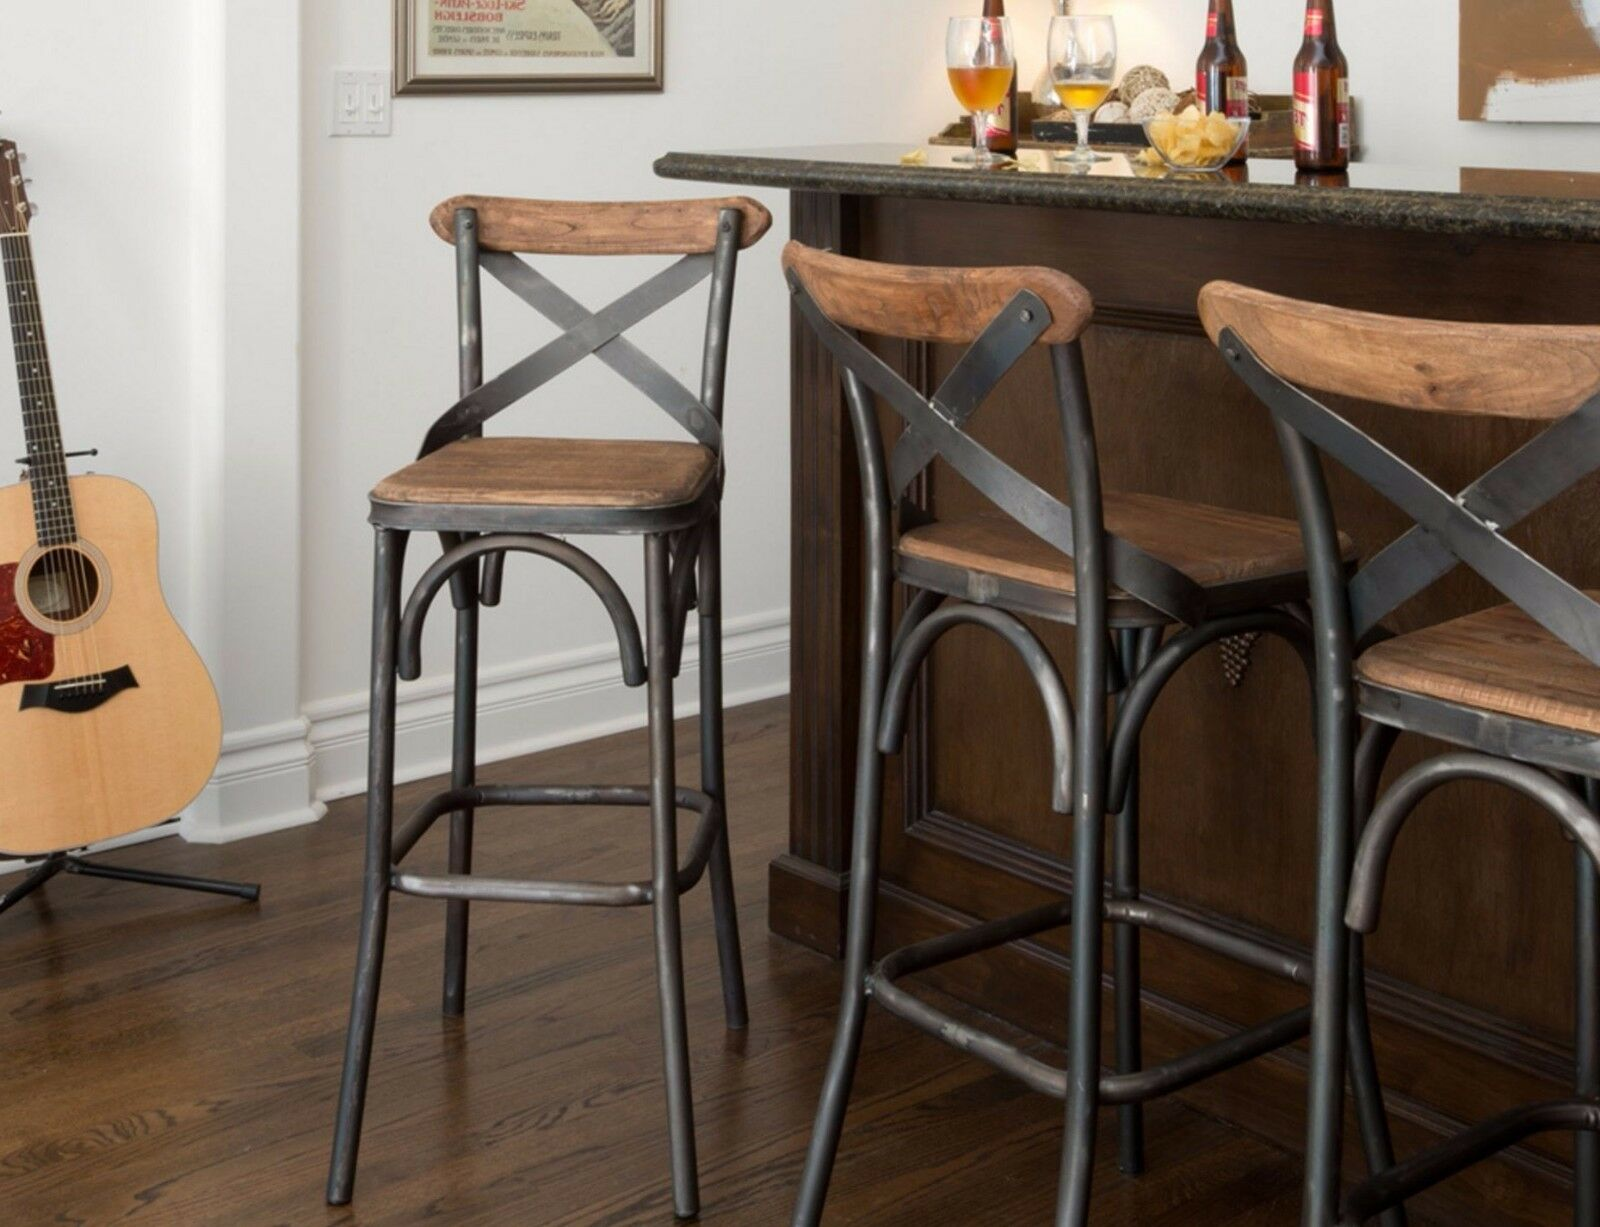 Bar Stools 30 Inches With Back Industrial Metal Unique Country